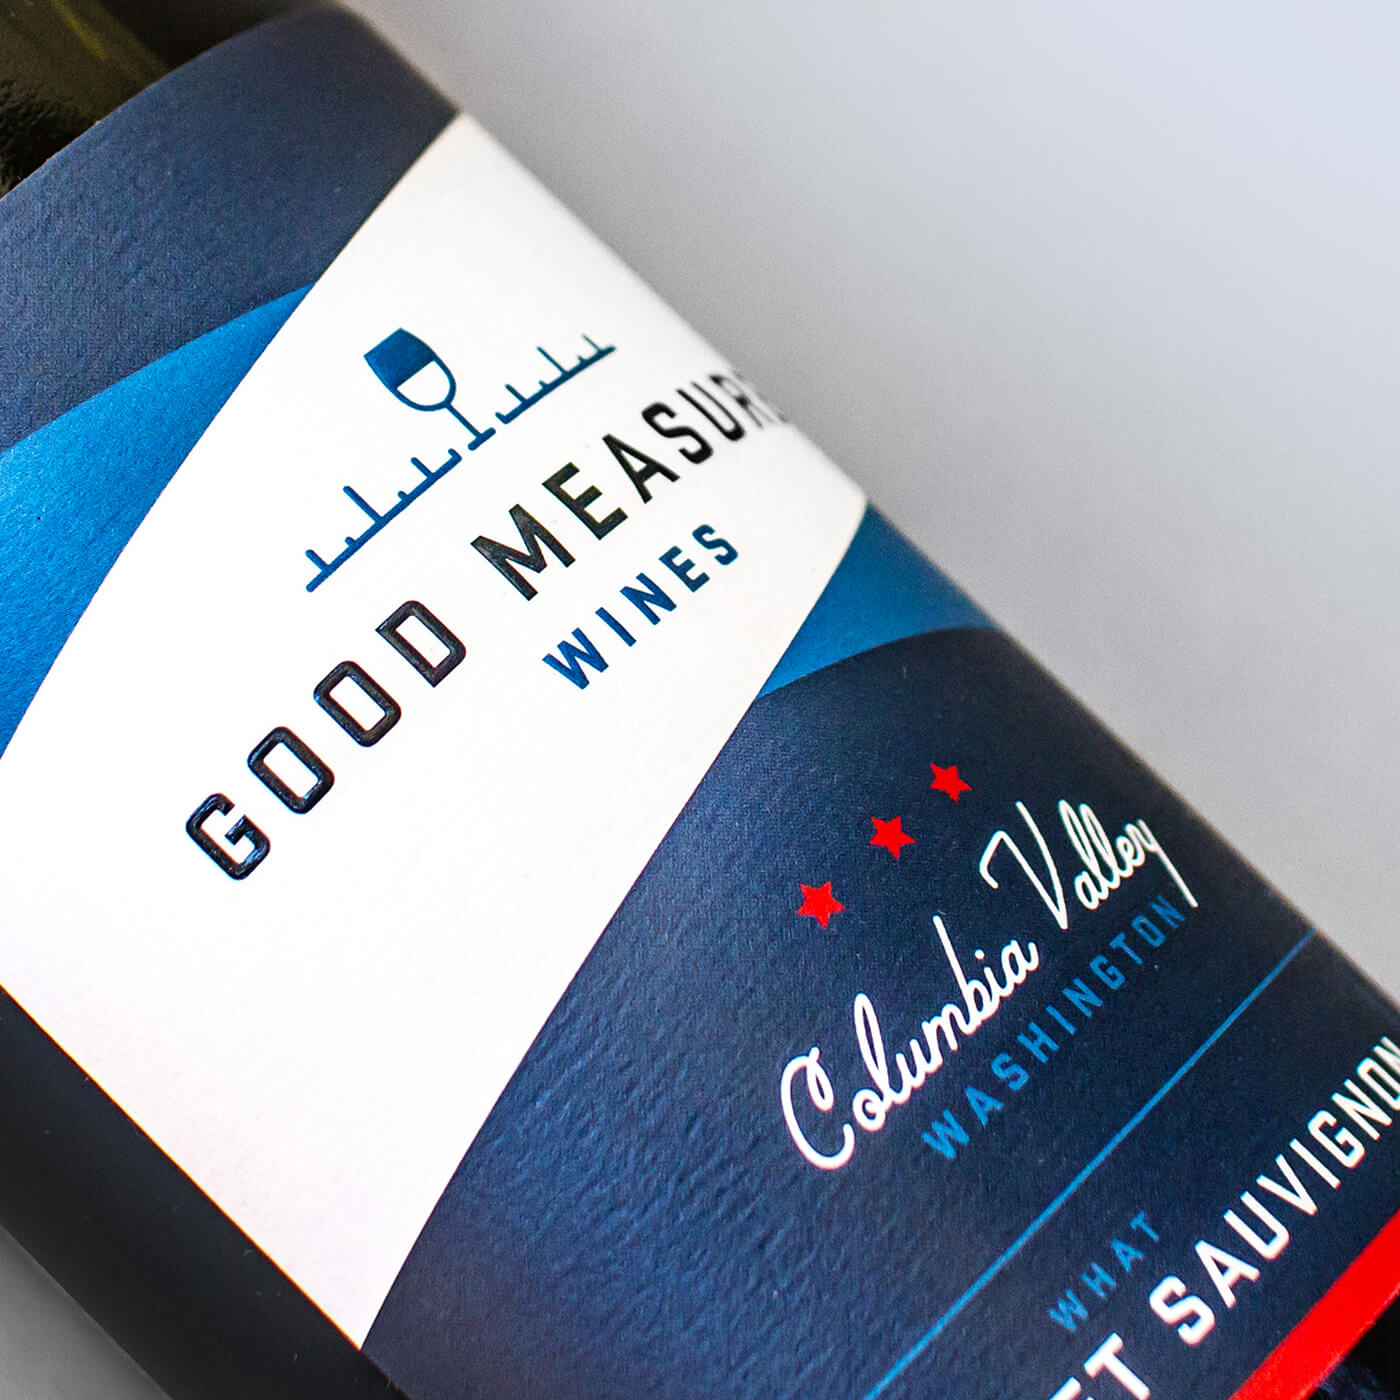 Good Measure Wines - A casual, accessible sister brand to Square, Plumb & Level that offers a slightly lower price point while retaining high quality taste to discernible palates.View Project →